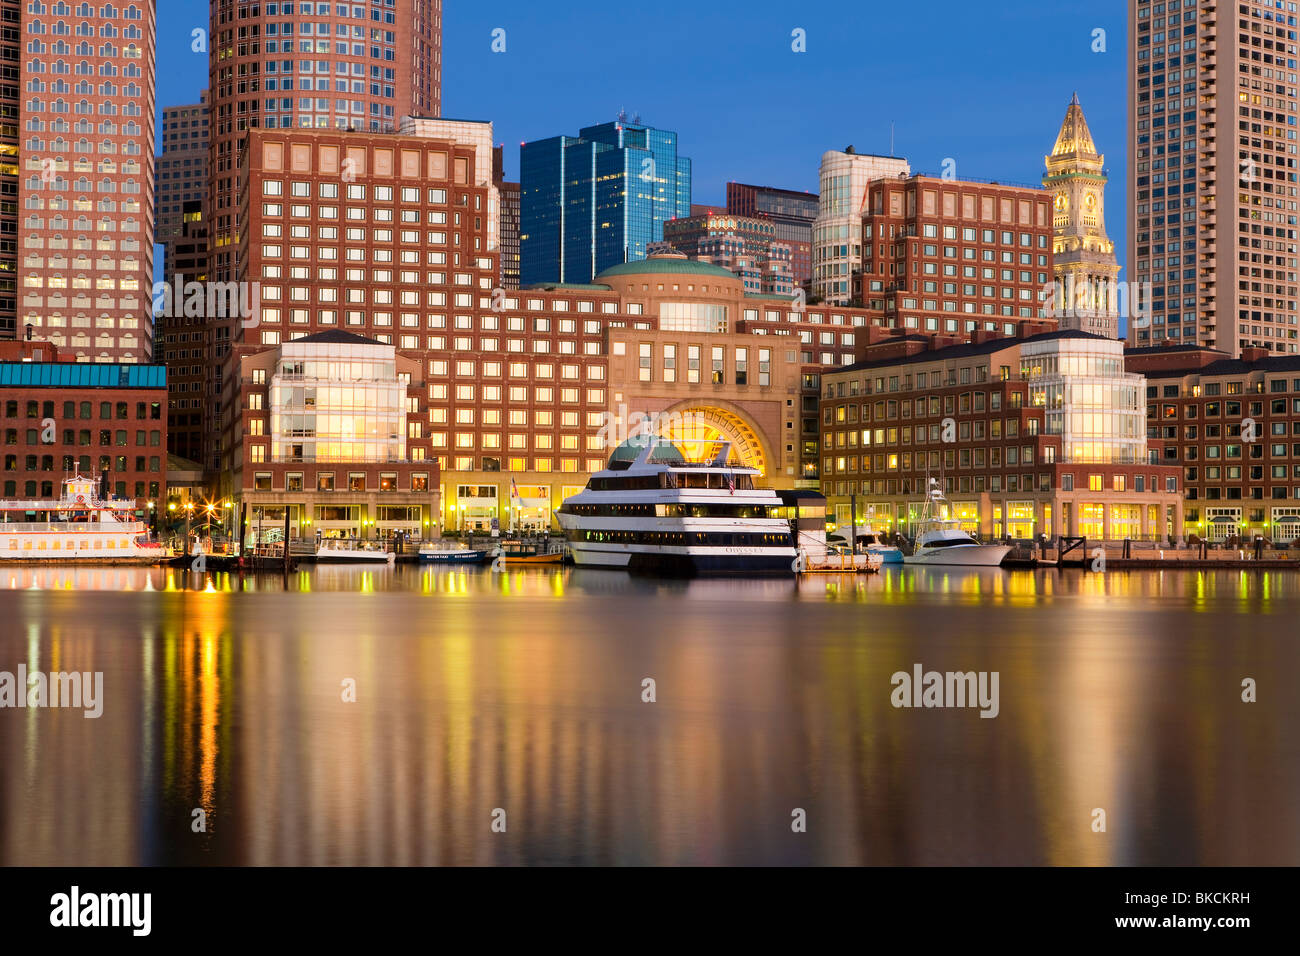 USA, Massachusetts, Boston, skyline and inner harbour including Rowes Wharf at dawn - Stock Image